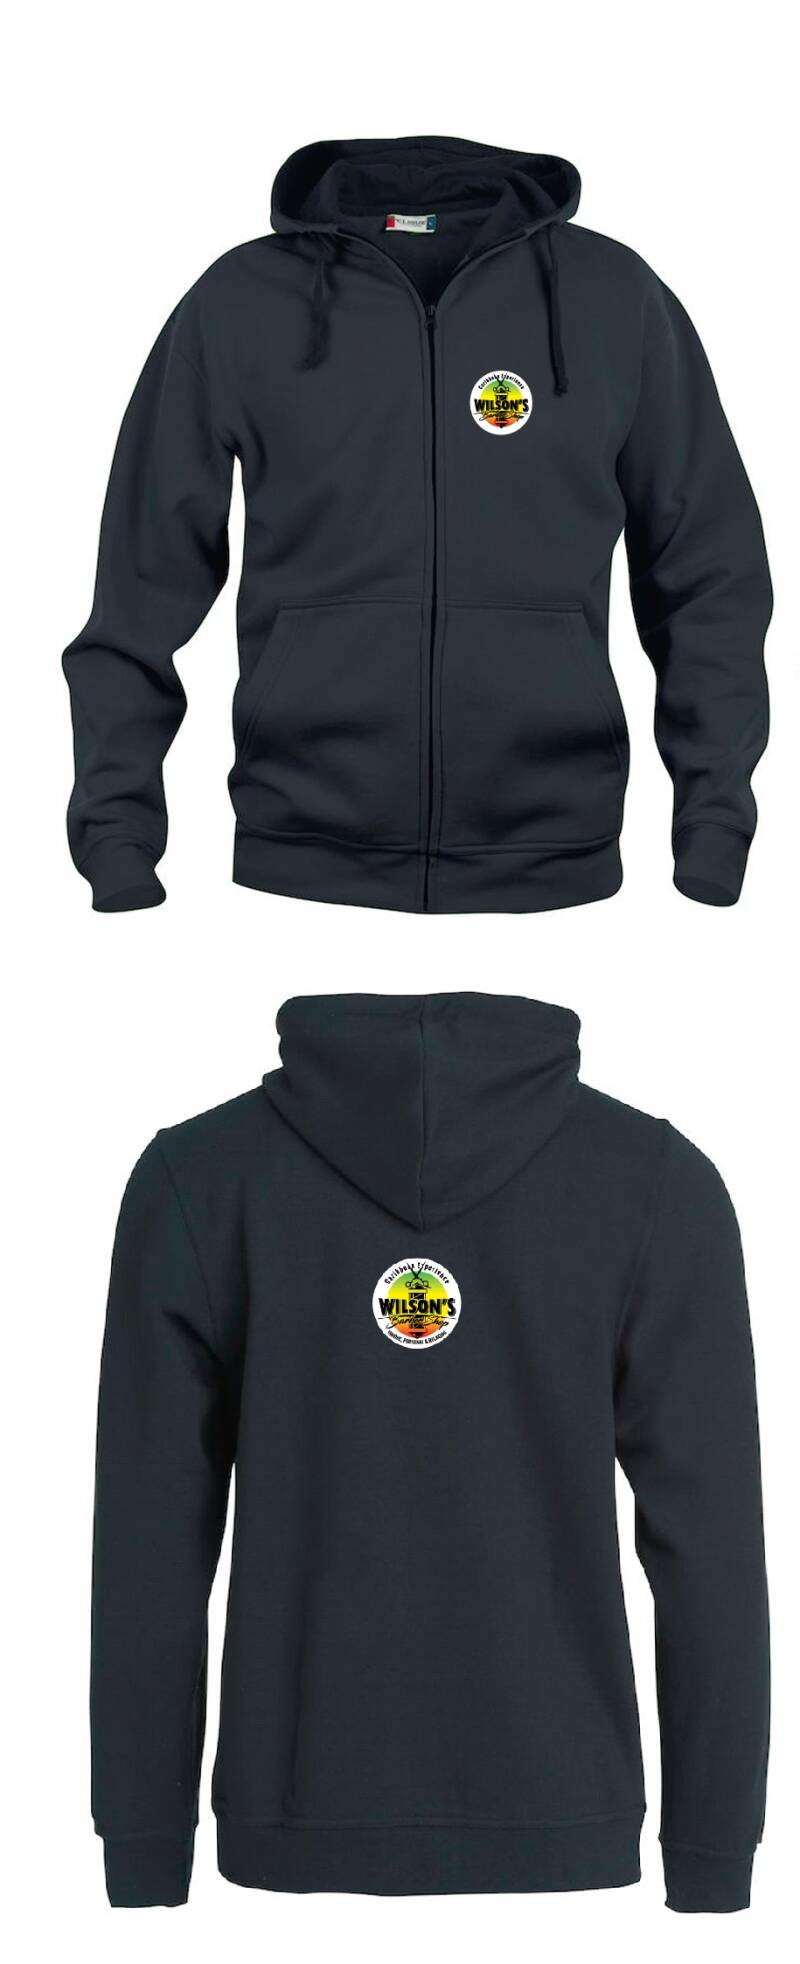 Designer Hoodie 2020! 1st Year Limited Edition BLACK with ZIPPER